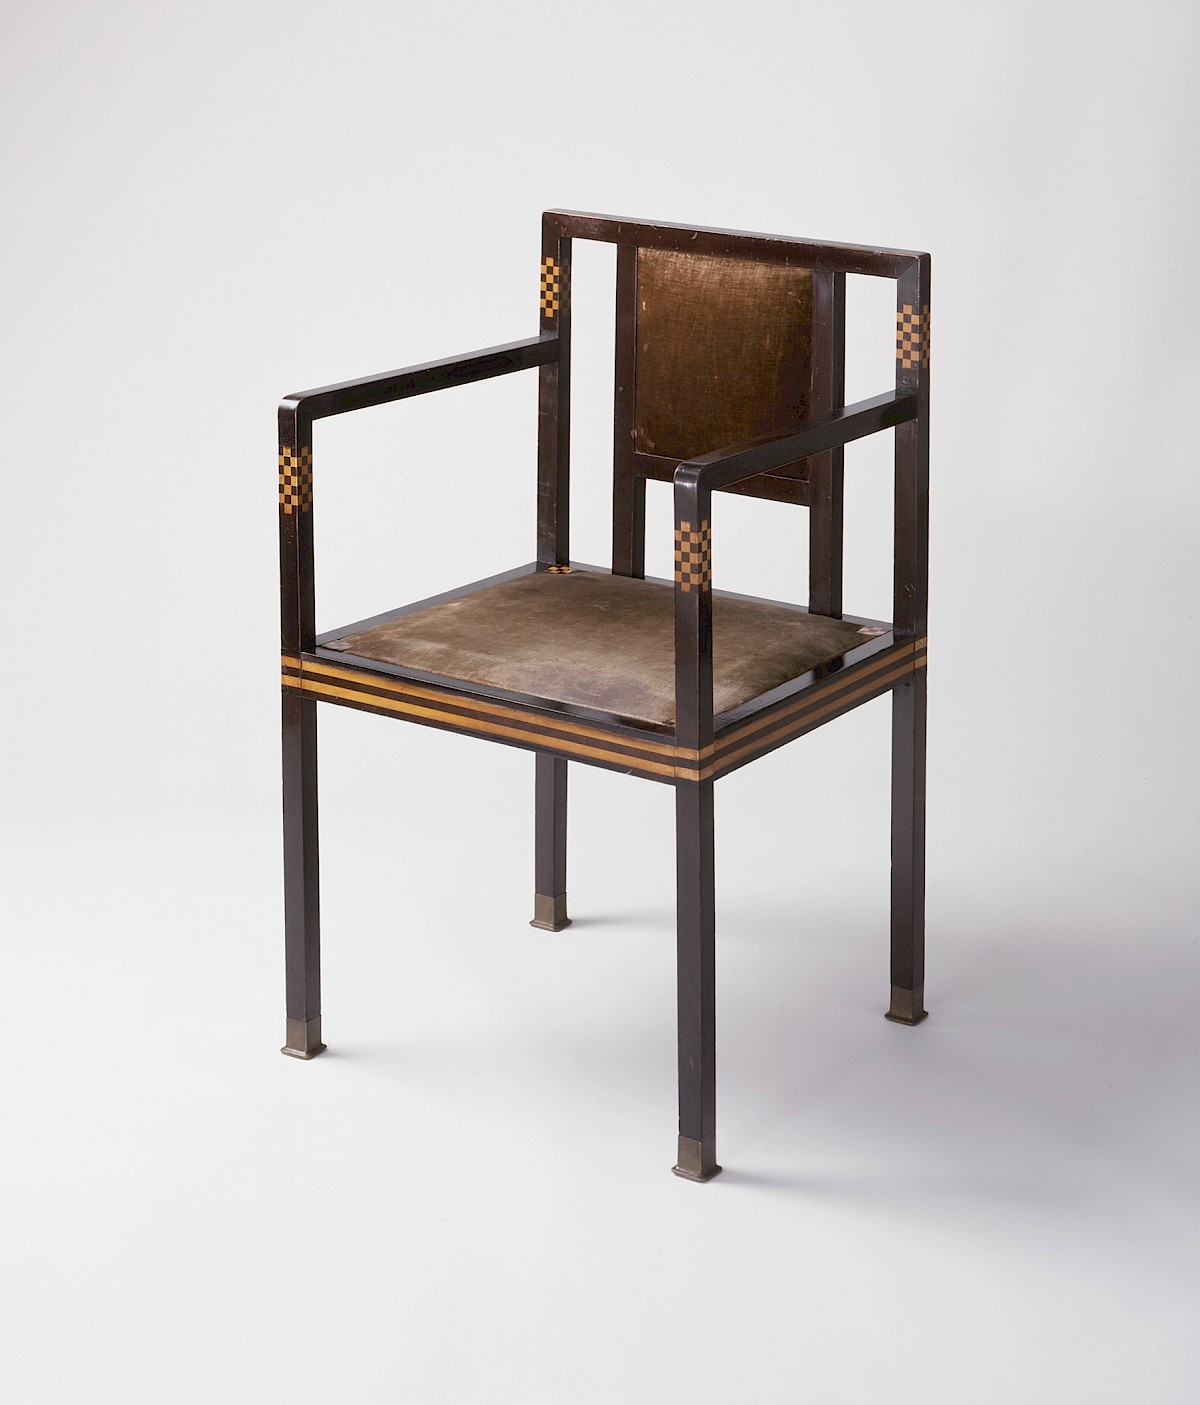 'The Rich Catch of Fish' Armchair by Koloman Moser